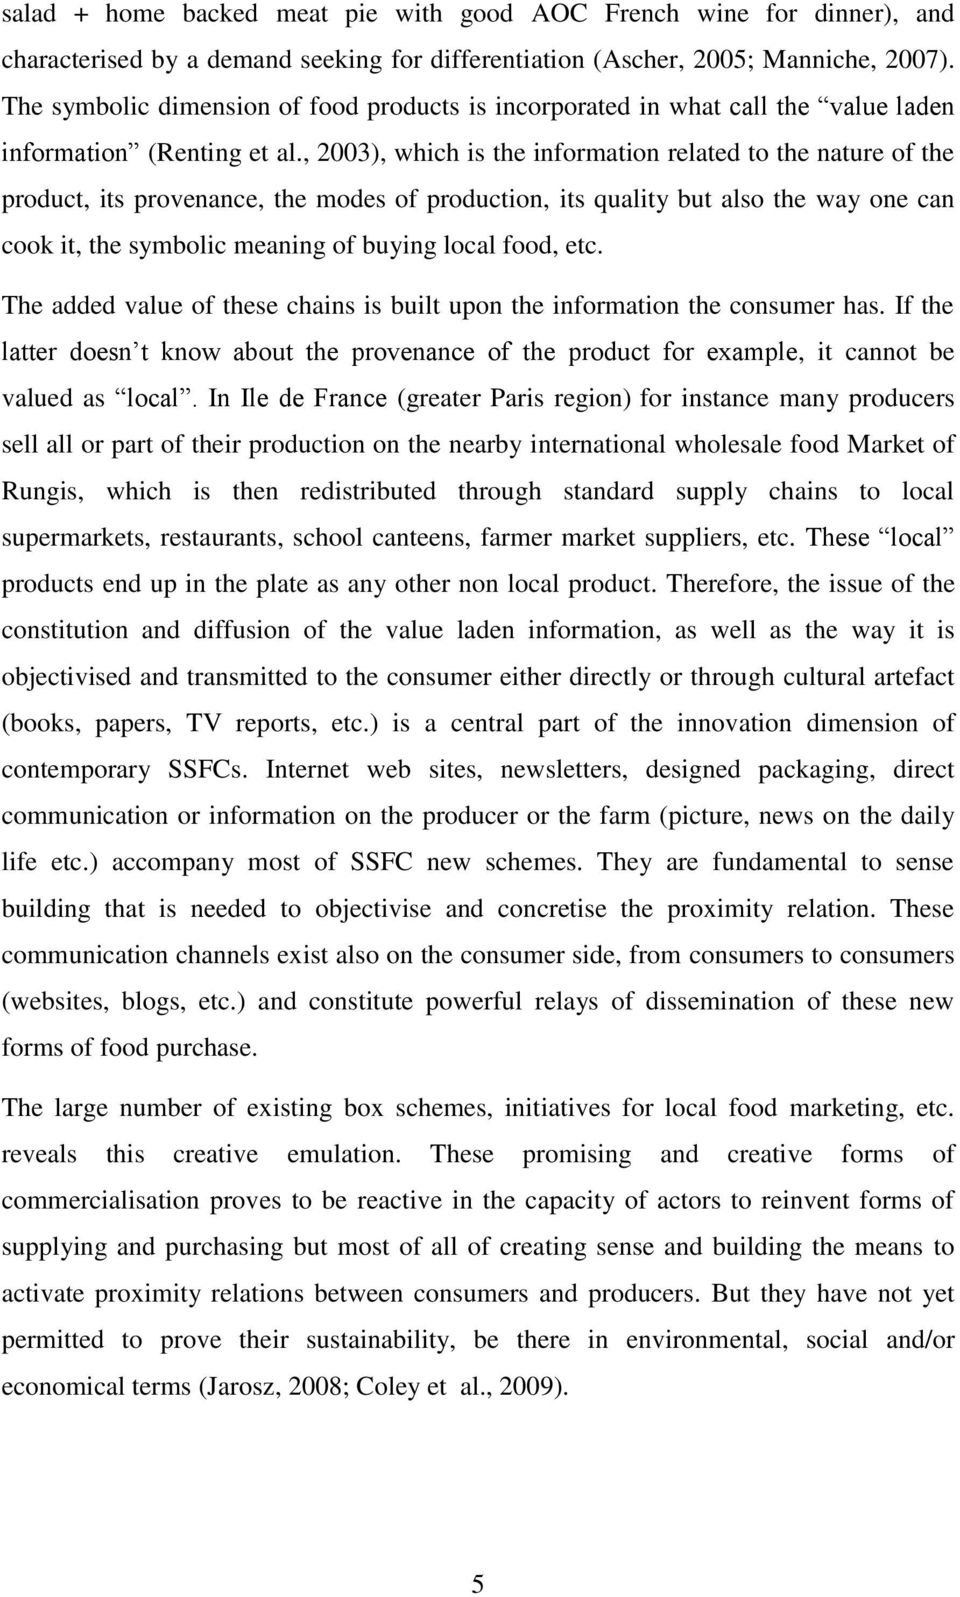 , 2003), which is the information related to the nature of the product, its provenance, the modes of production, its quality but also the way one can cook it, the symbolic meaning of buying local